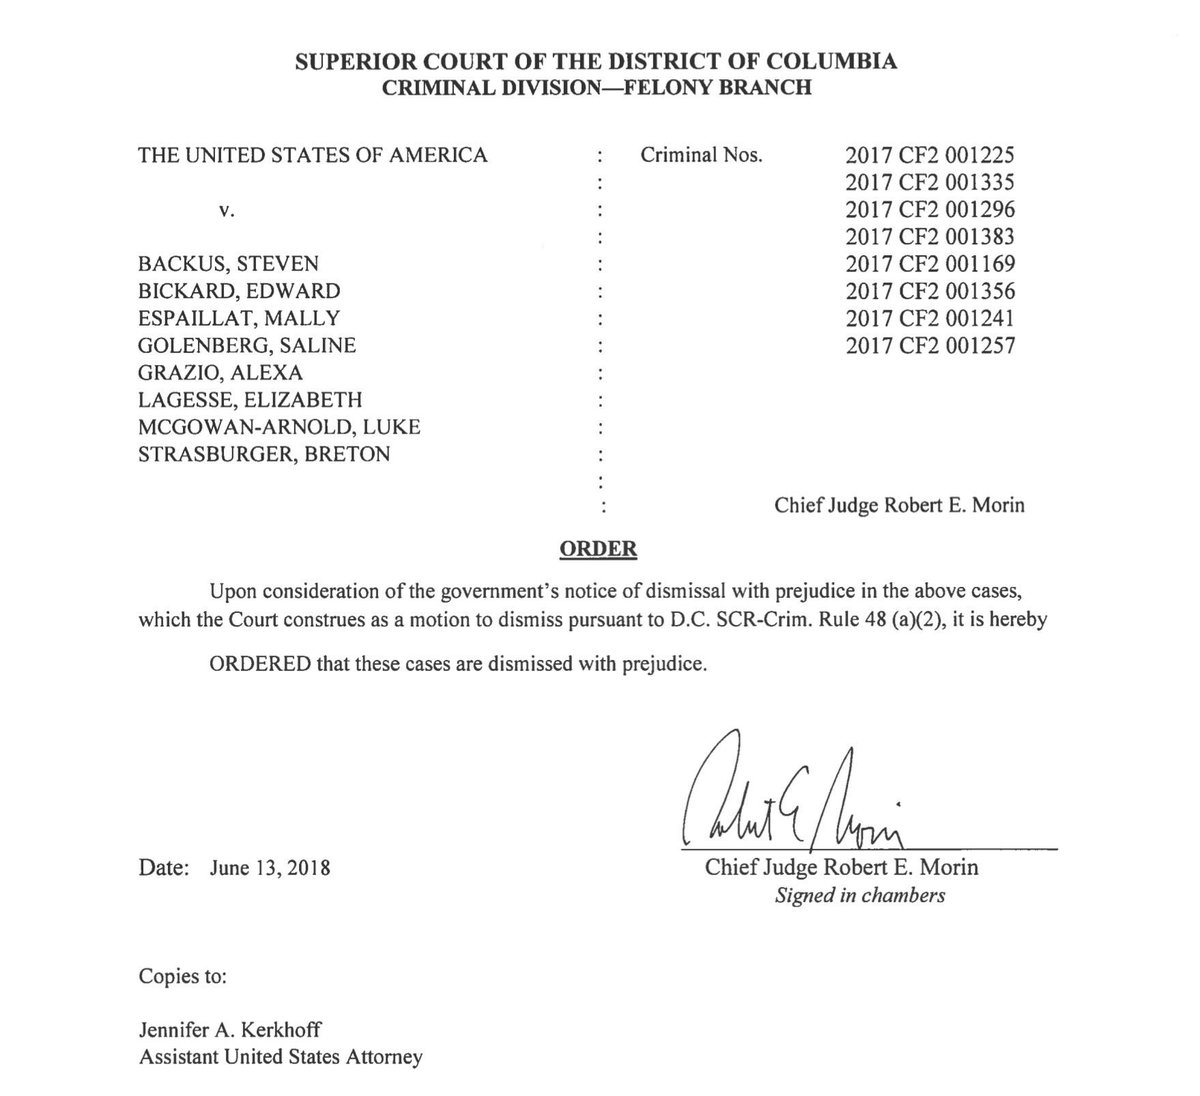 Here's the order in which DC Superior Court Chief Judge Robert Morin signs off on the dismissal of 8 #J20 cases: